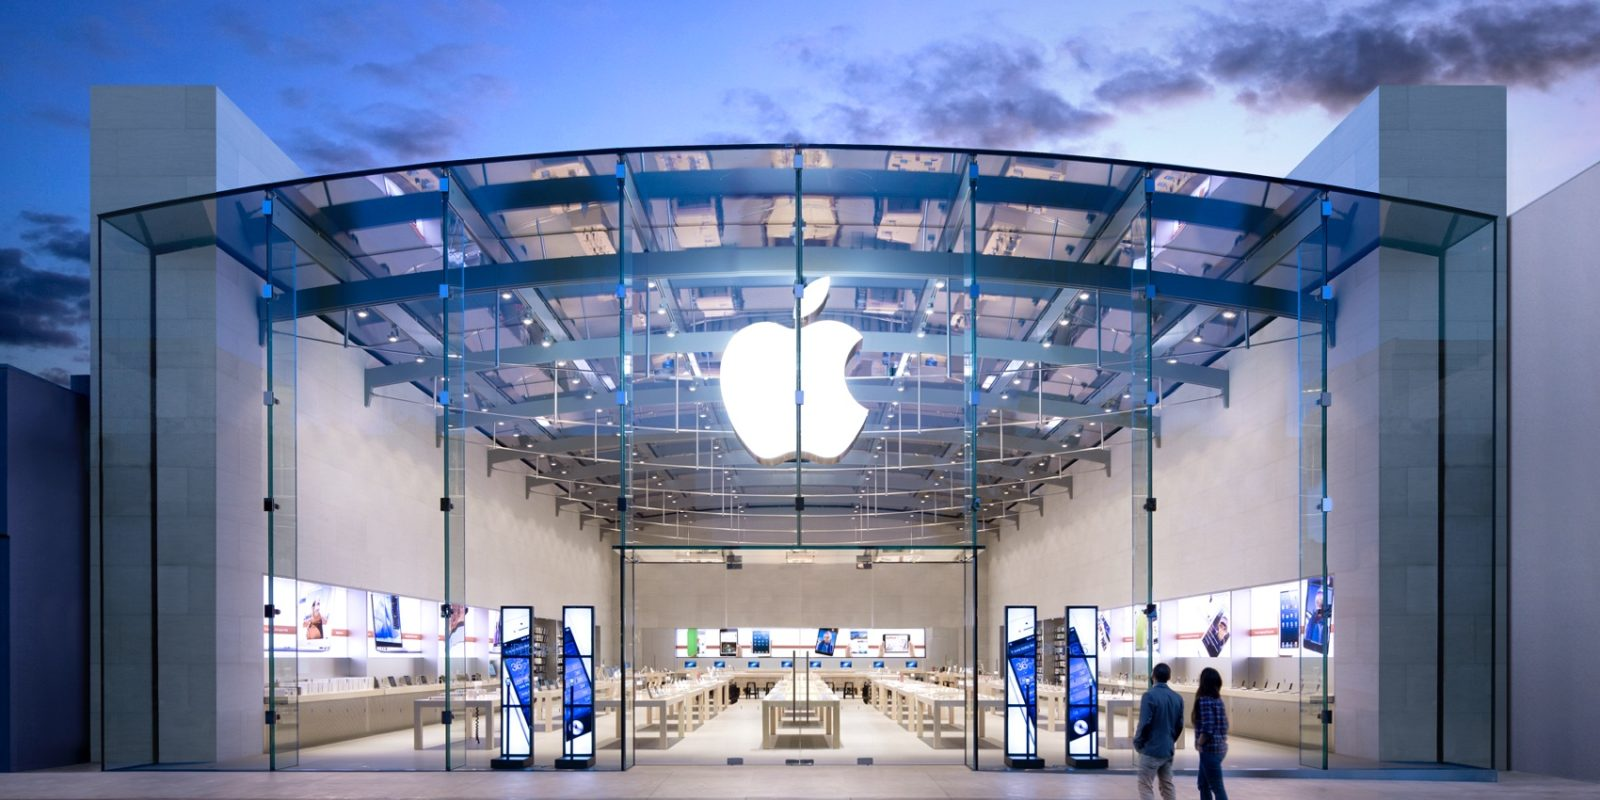 Apple again found to be the world's top retailer in sales per square